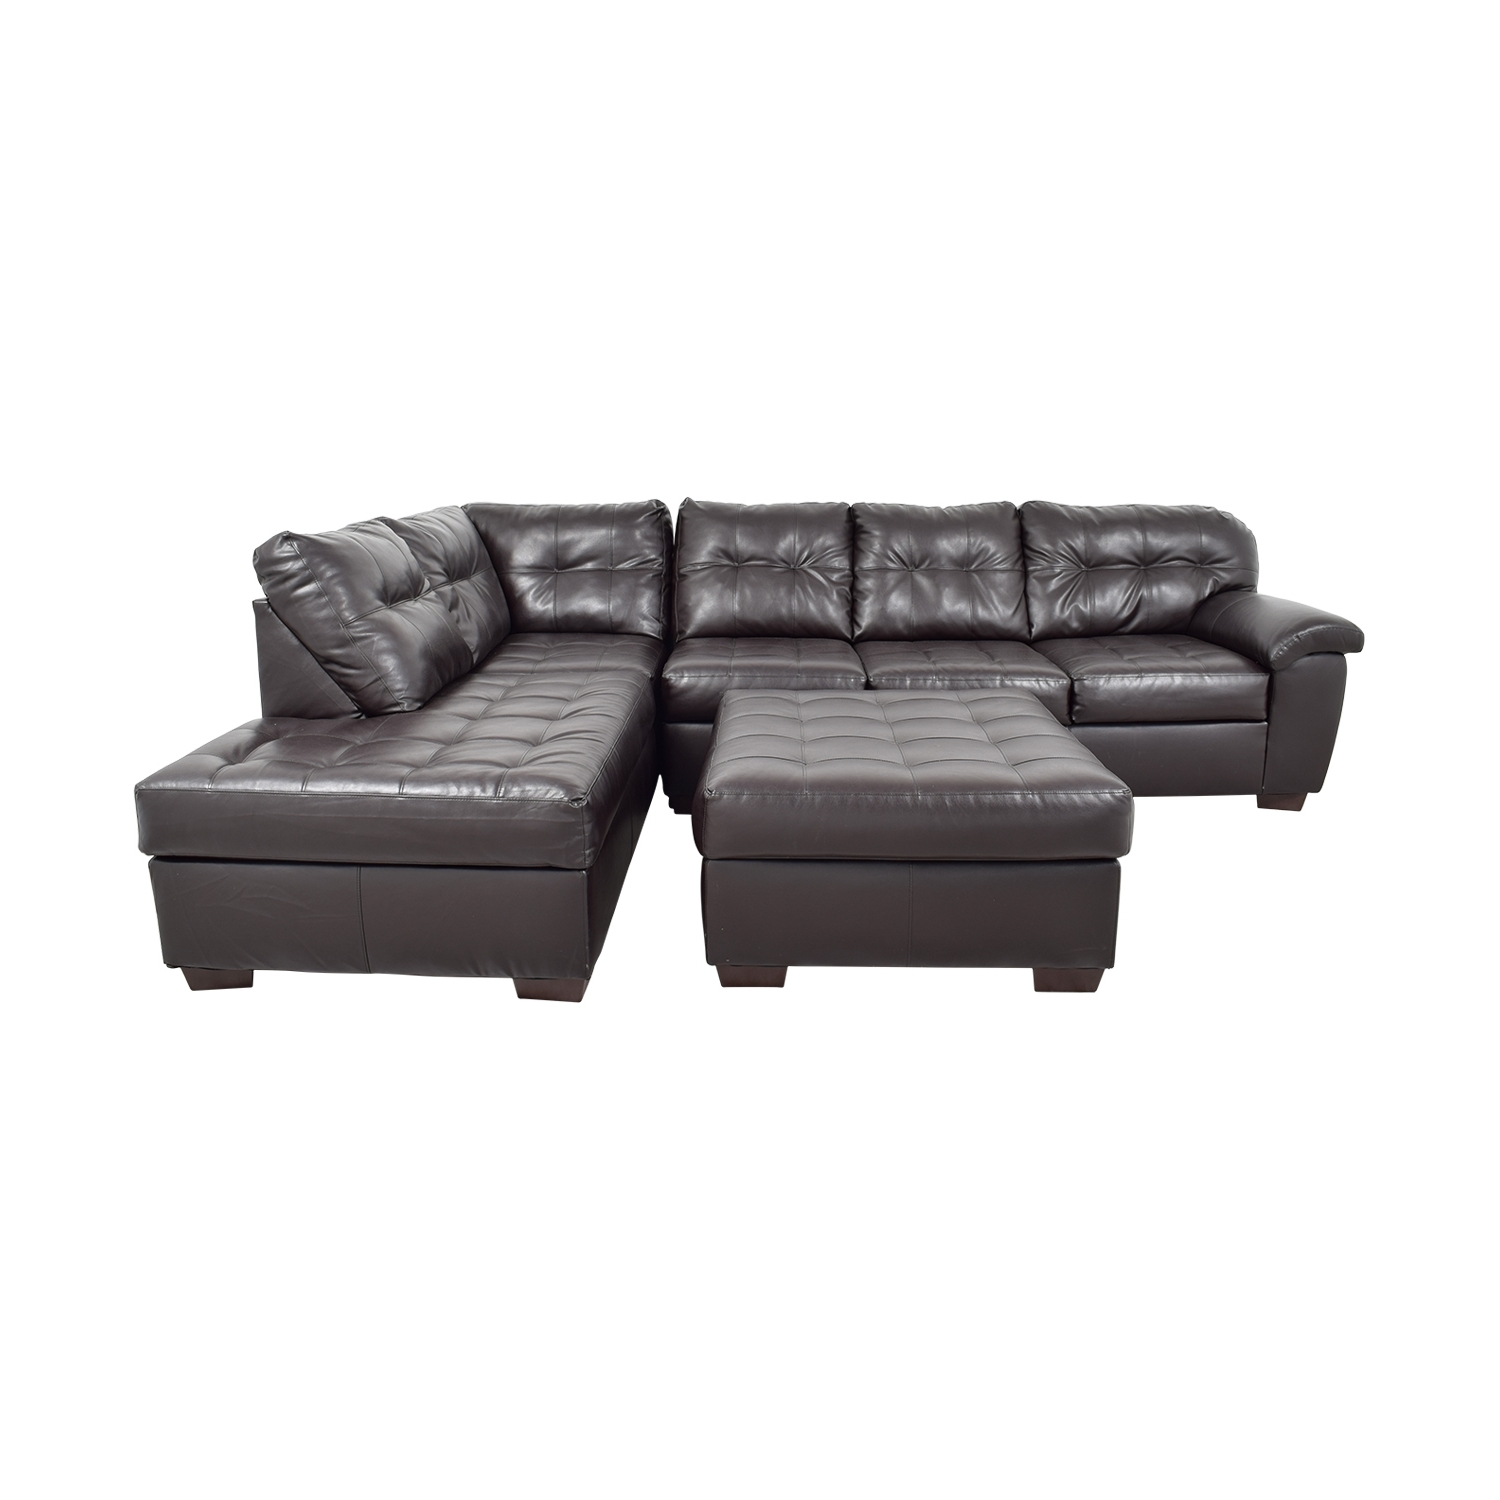 [%47% Off – Simmons Simmons Brown Leather Sectional With Ottoman / Sofas Pertaining To Favorite Simmons Chaise Sofas|Simmons Chaise Sofas In Well Known 47% Off – Simmons Simmons Brown Leather Sectional With Ottoman / Sofas|Trendy Simmons Chaise Sofas For 47% Off – Simmons Simmons Brown Leather Sectional With Ottoman / Sofas|Fashionable 47% Off – Simmons Simmons Brown Leather Sectional With Ottoman / Sofas Intended For Simmons Chaise Sofas%] (View 1 of 15)